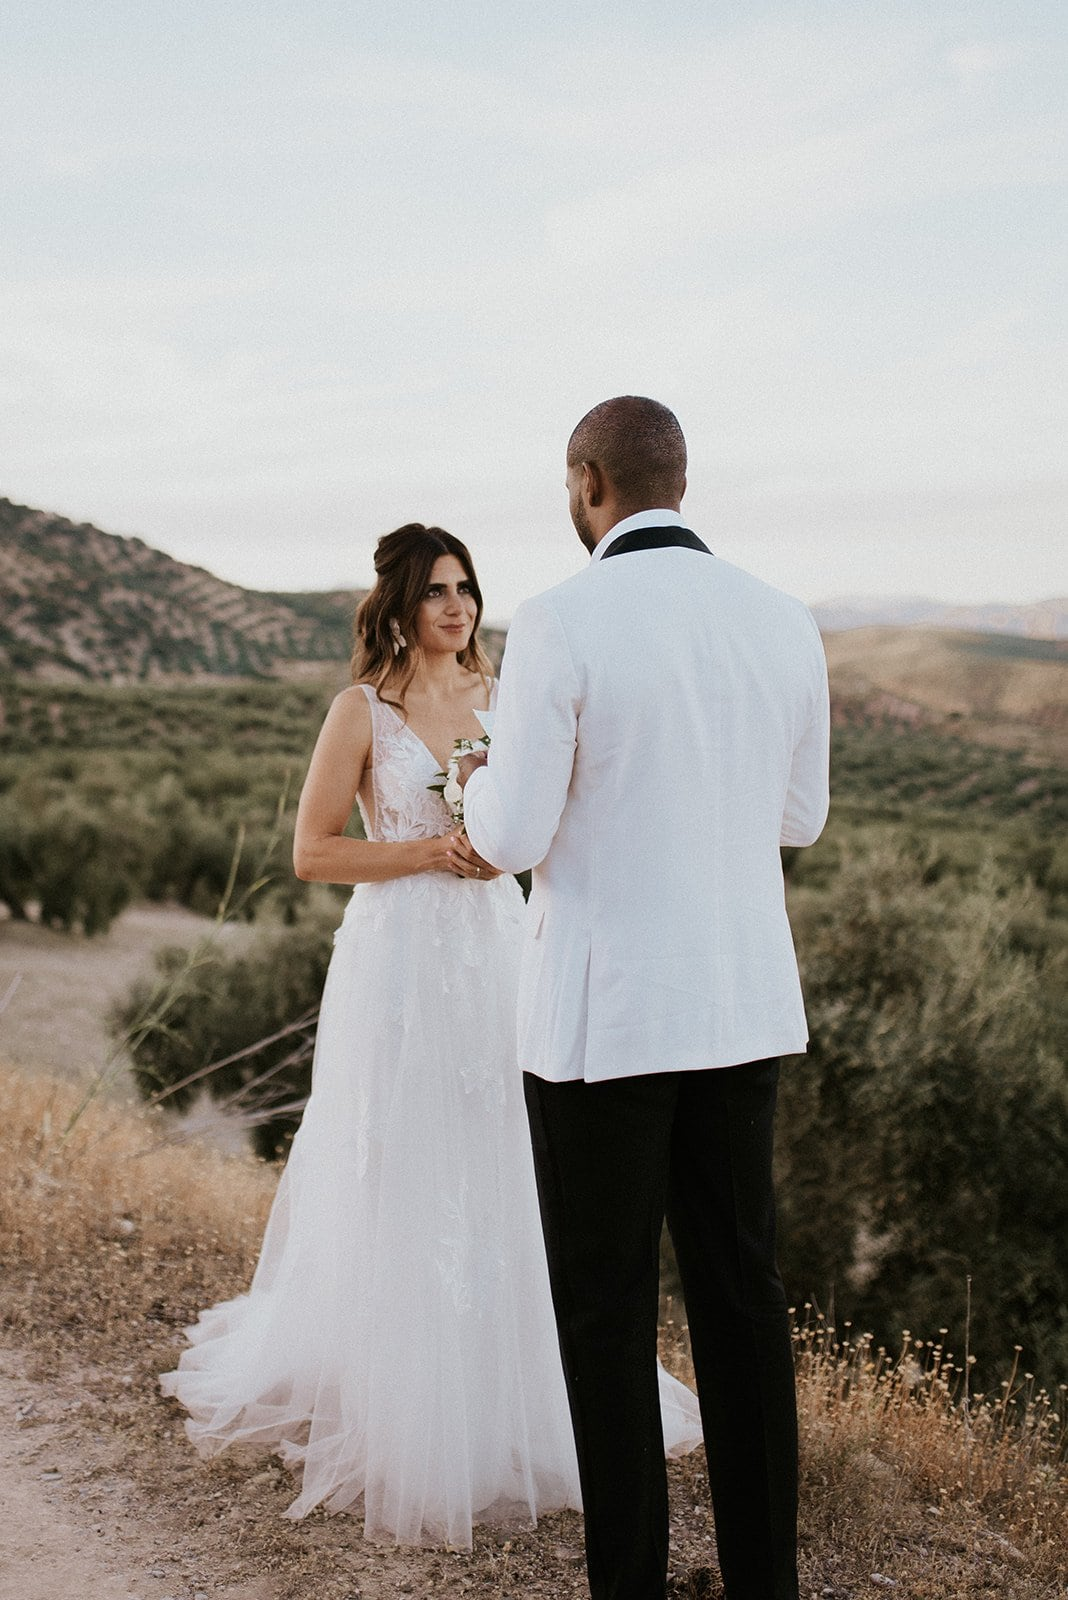 A bride and groom saying vows